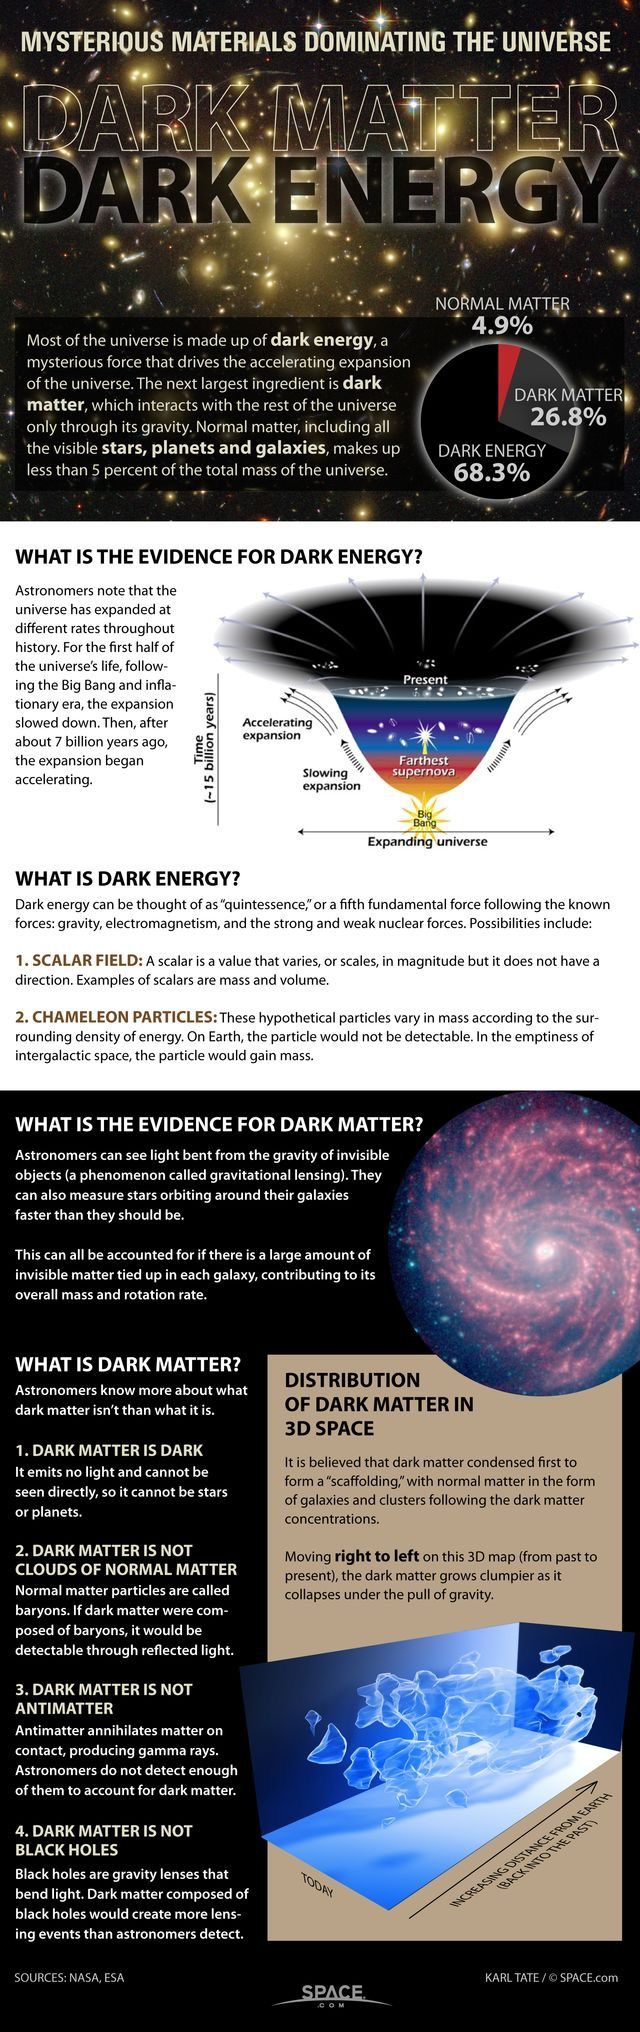 "As for me, all the ""dark"" stuff is bullshit. I do NOT subscribe to these theories. It's all gravity, the forces of electromagnetism and nuclear reactions."